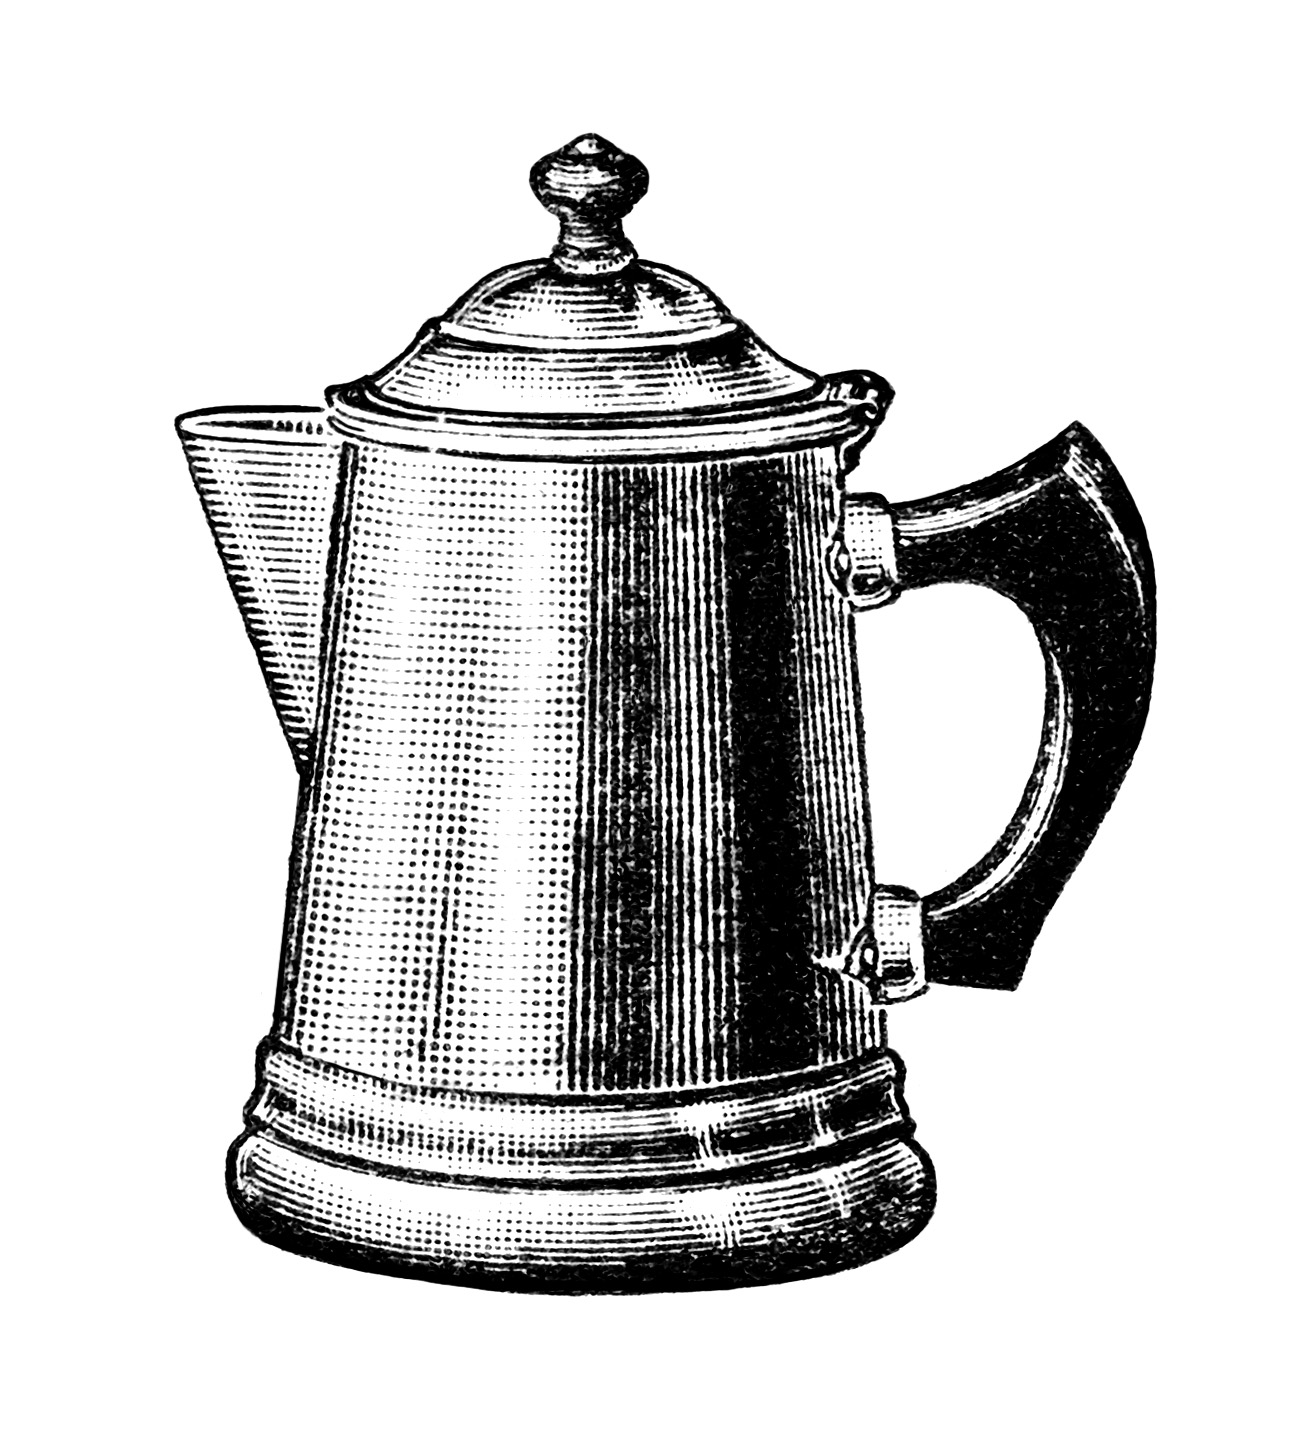 How To Use Vintage Coffee Maker : Free Vintage Image Coffee Pots Clip Art Old Design Shop Blog